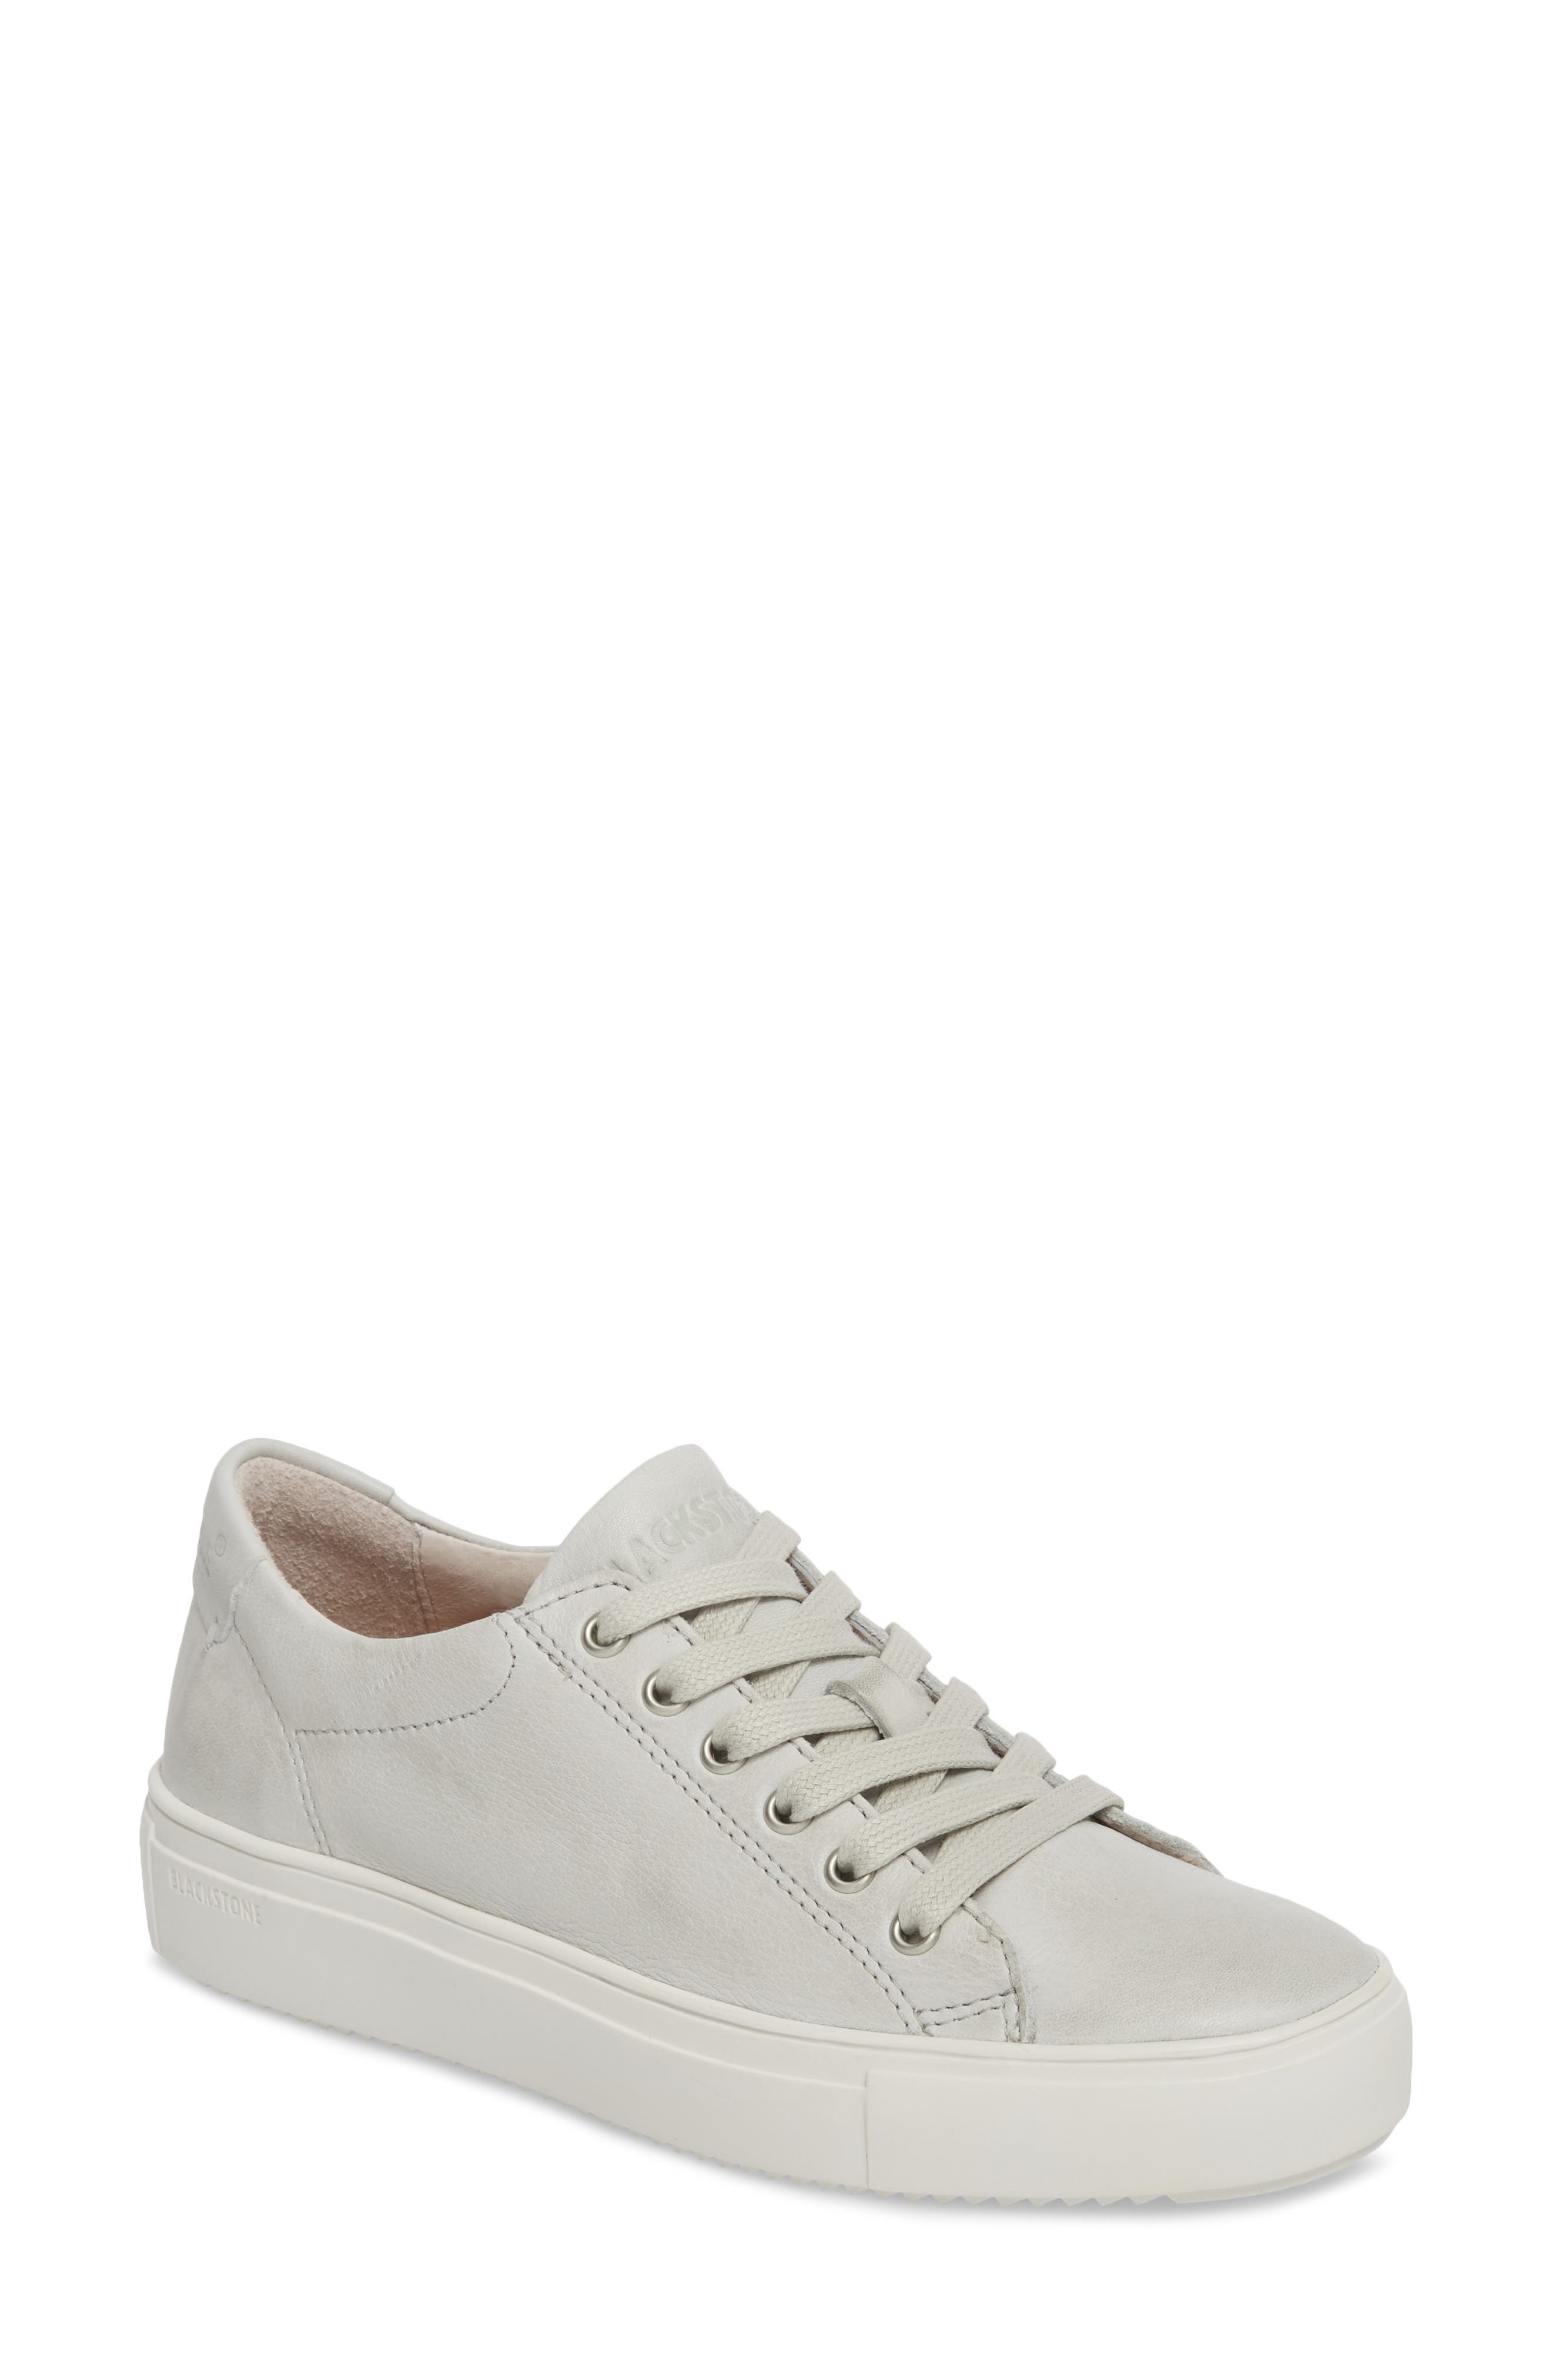 PL71 Low Top Sneaker,                         Main,                         color, ICE GREY LEATHER